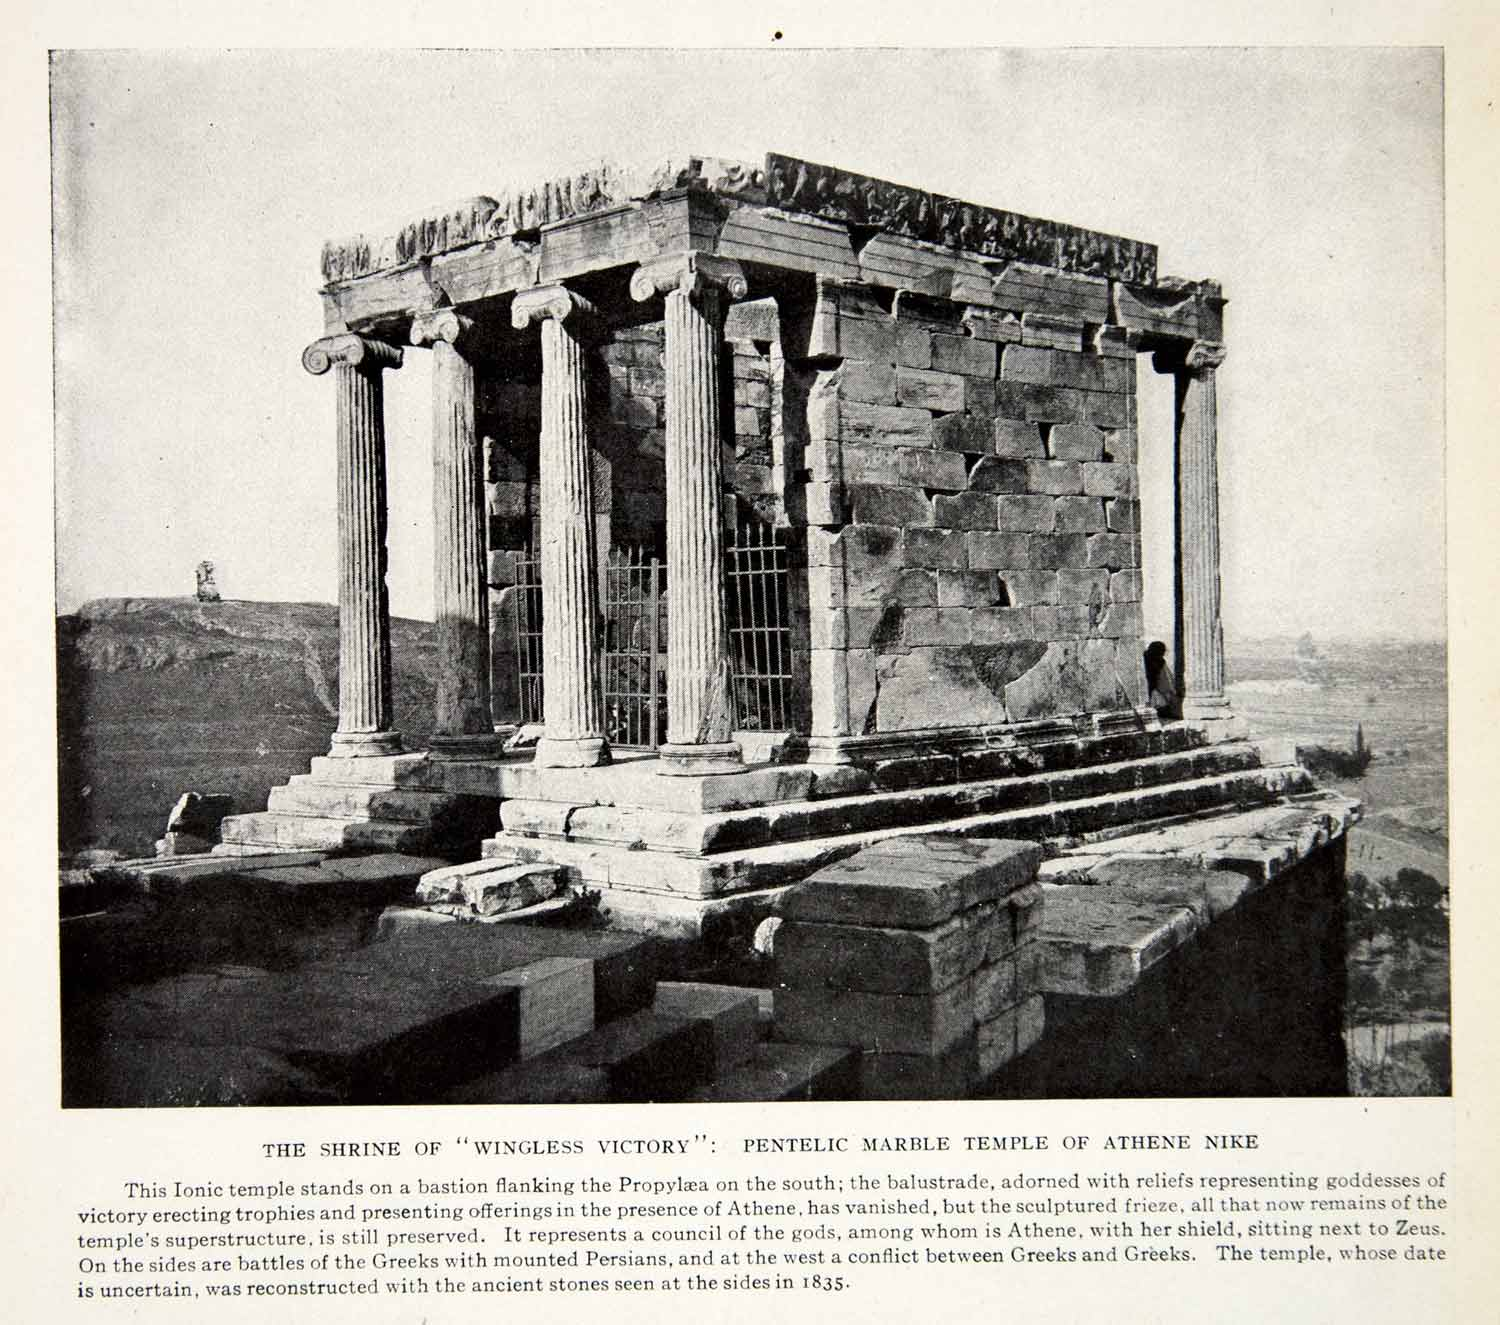 1924 Print Shrine Wingless Victory Pentelic Marble Temple Athene Nike XGTC9